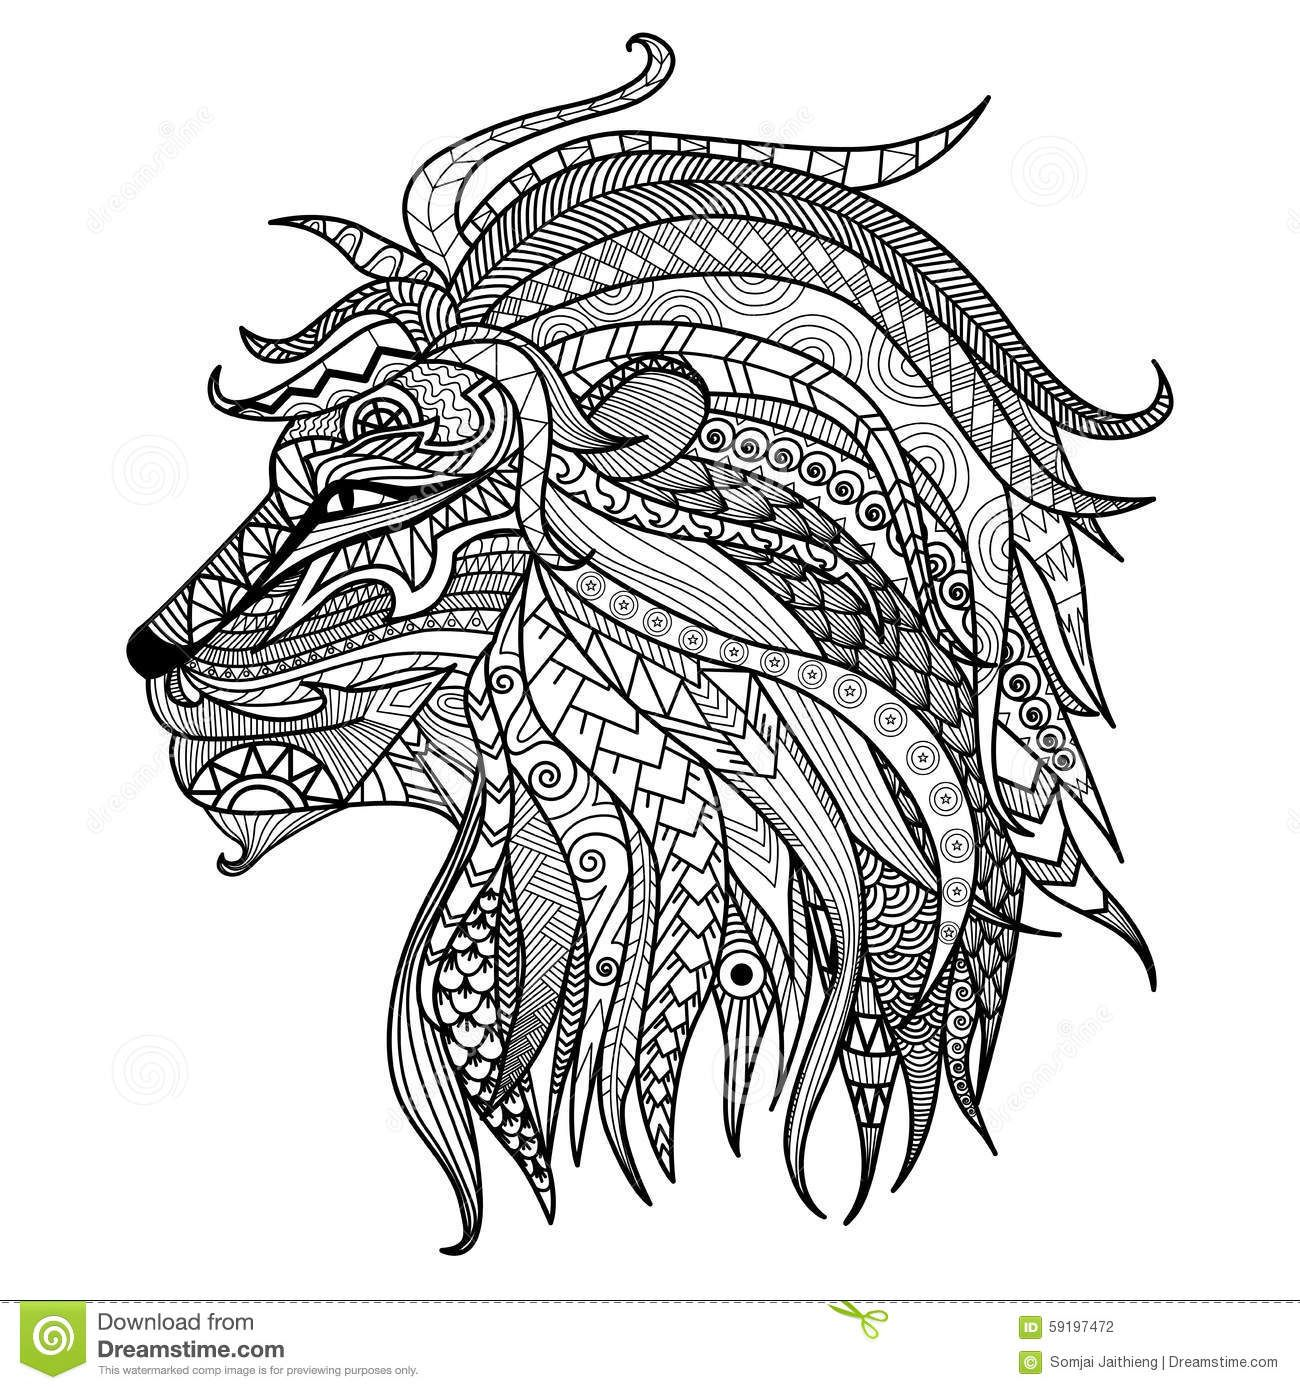 Hand drawn lion coloring page download from over 61 million high quality stock photos images vectors sign up for free today image 59197472